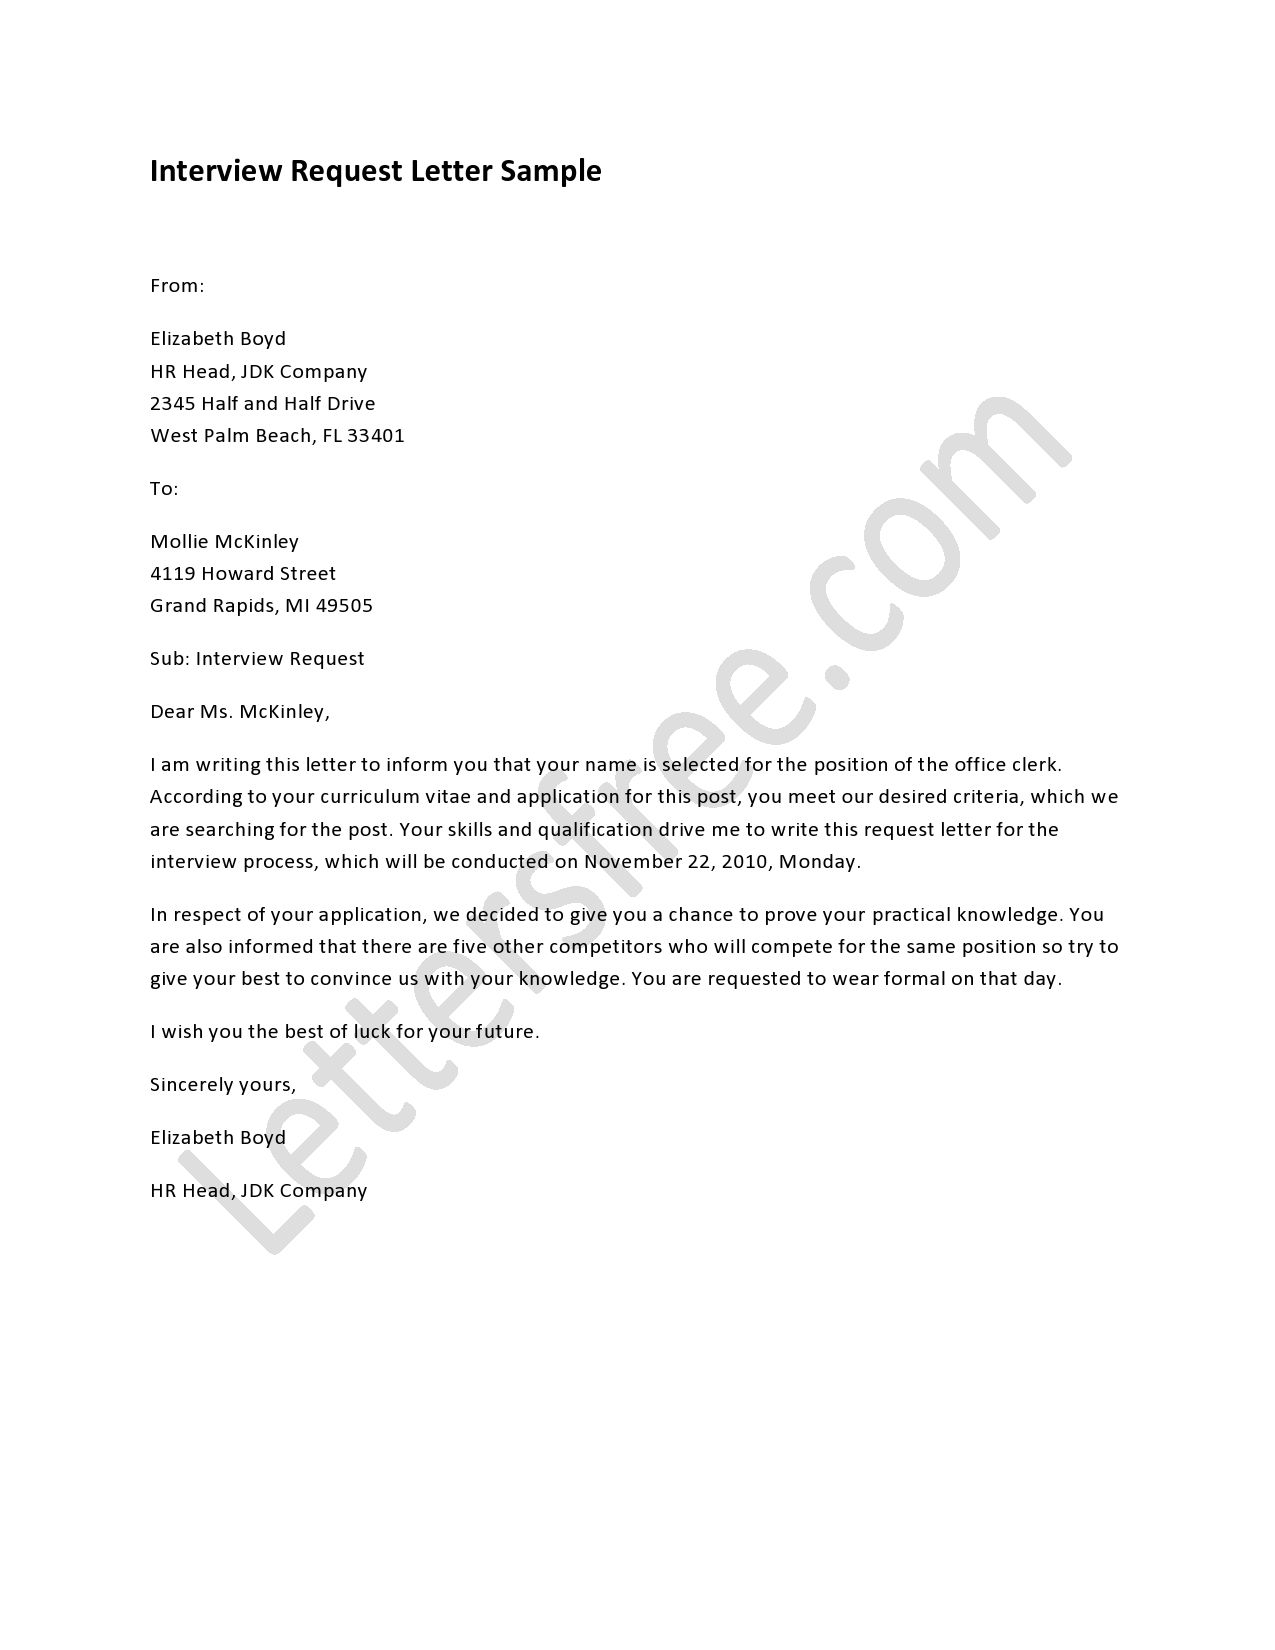 Tips For Writing Interview Request Letter  Resume Templates